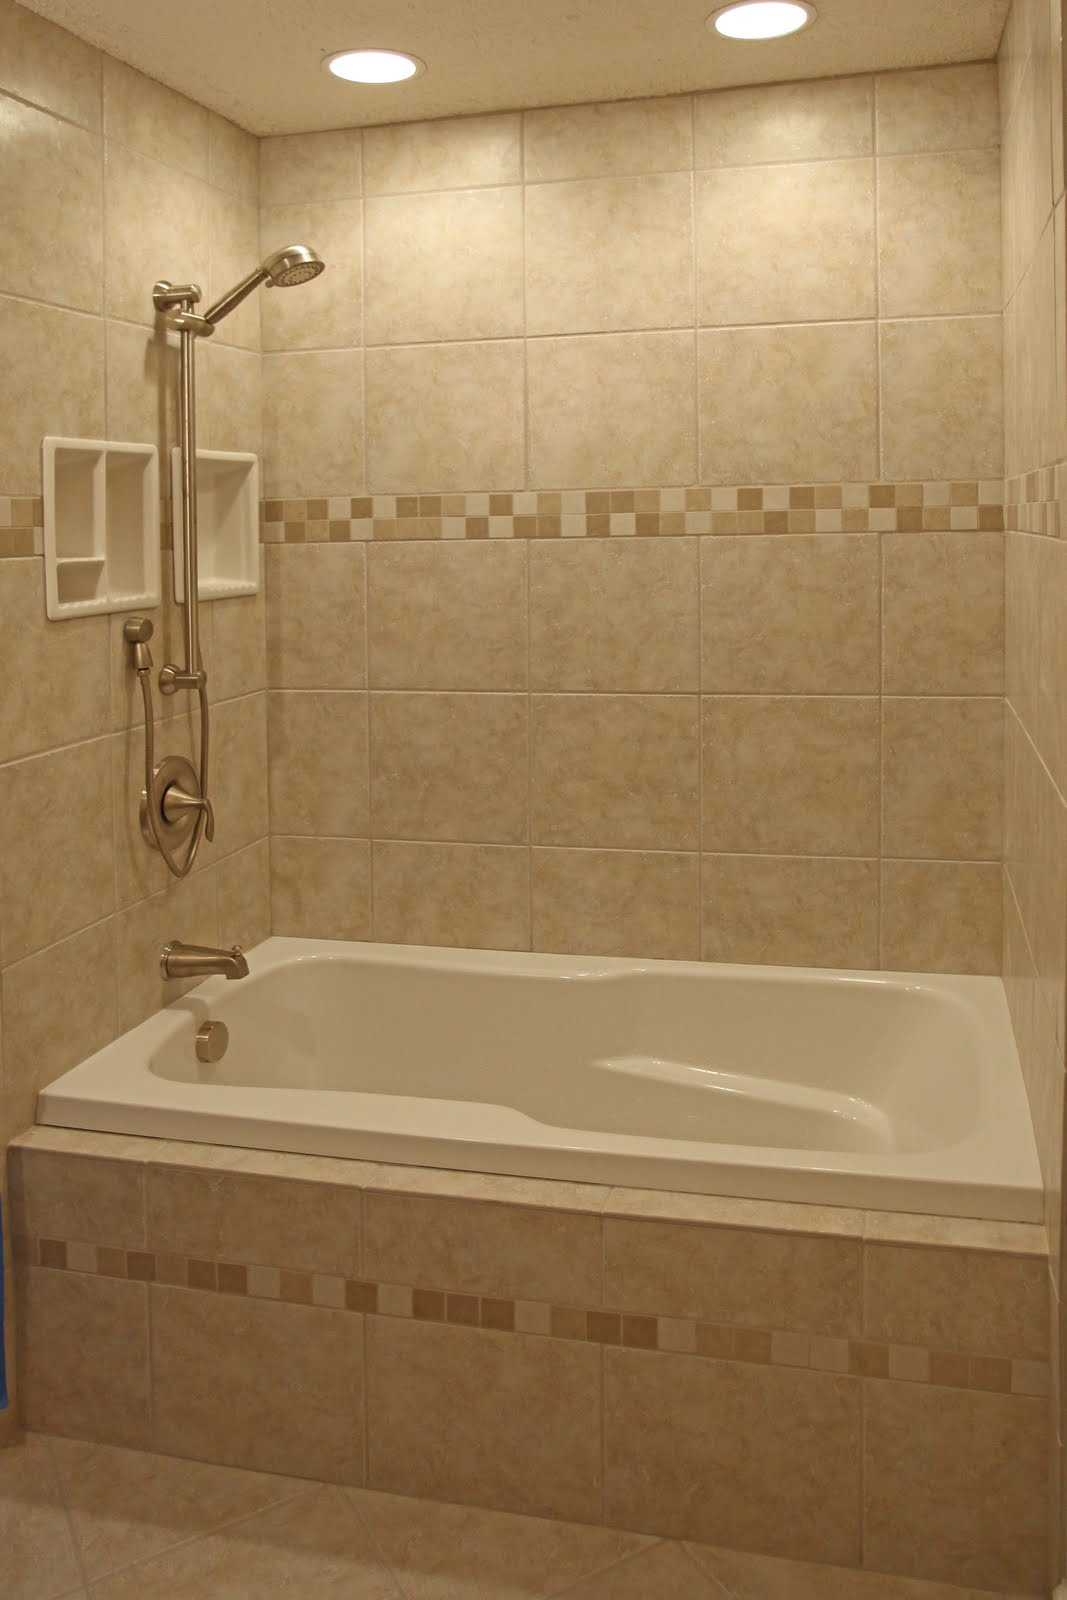 Bathroom remodeling design ideas tile shower niches for Bathroom remodeling pictures and ideas